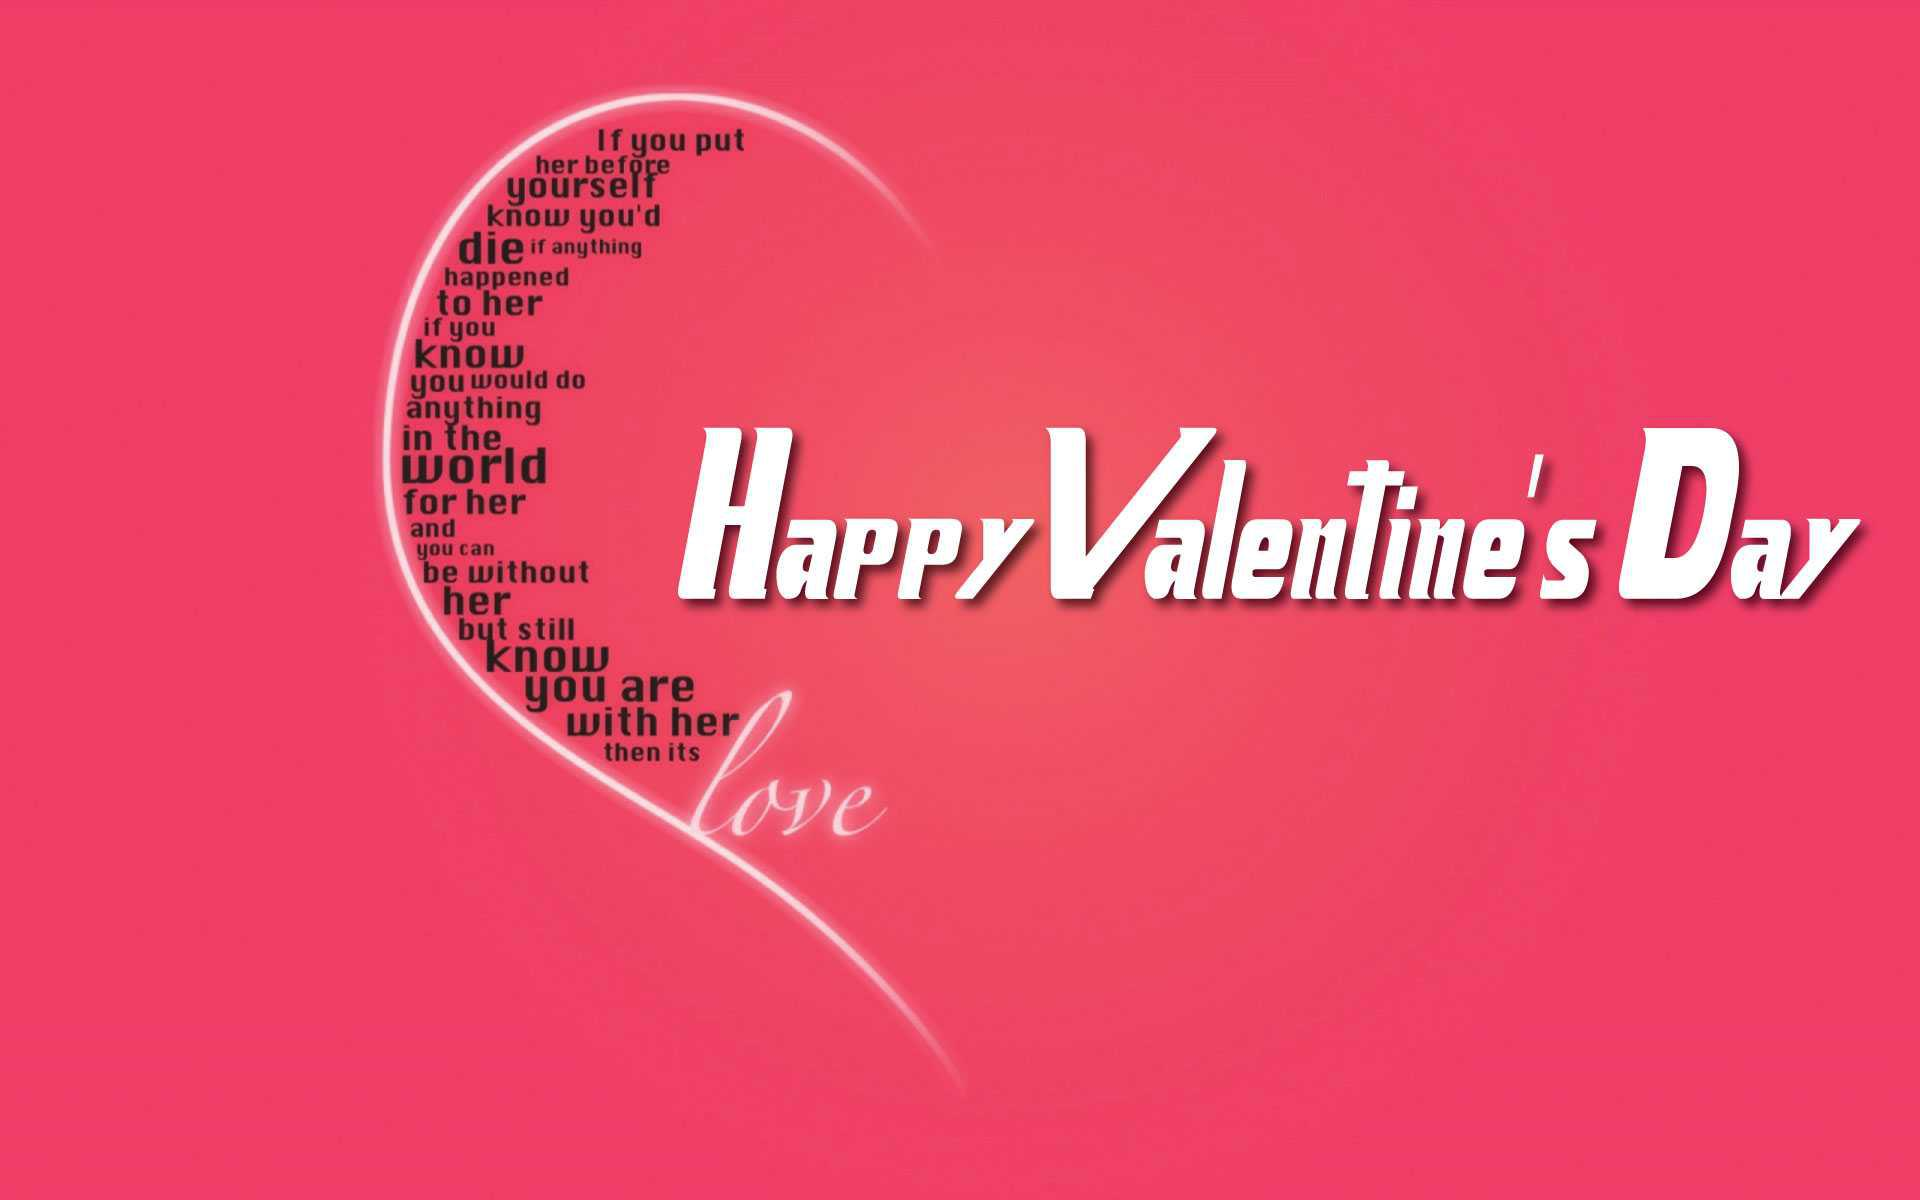 Happy Valentine's Day 2017 SMS, Images, Ideas for College Friends